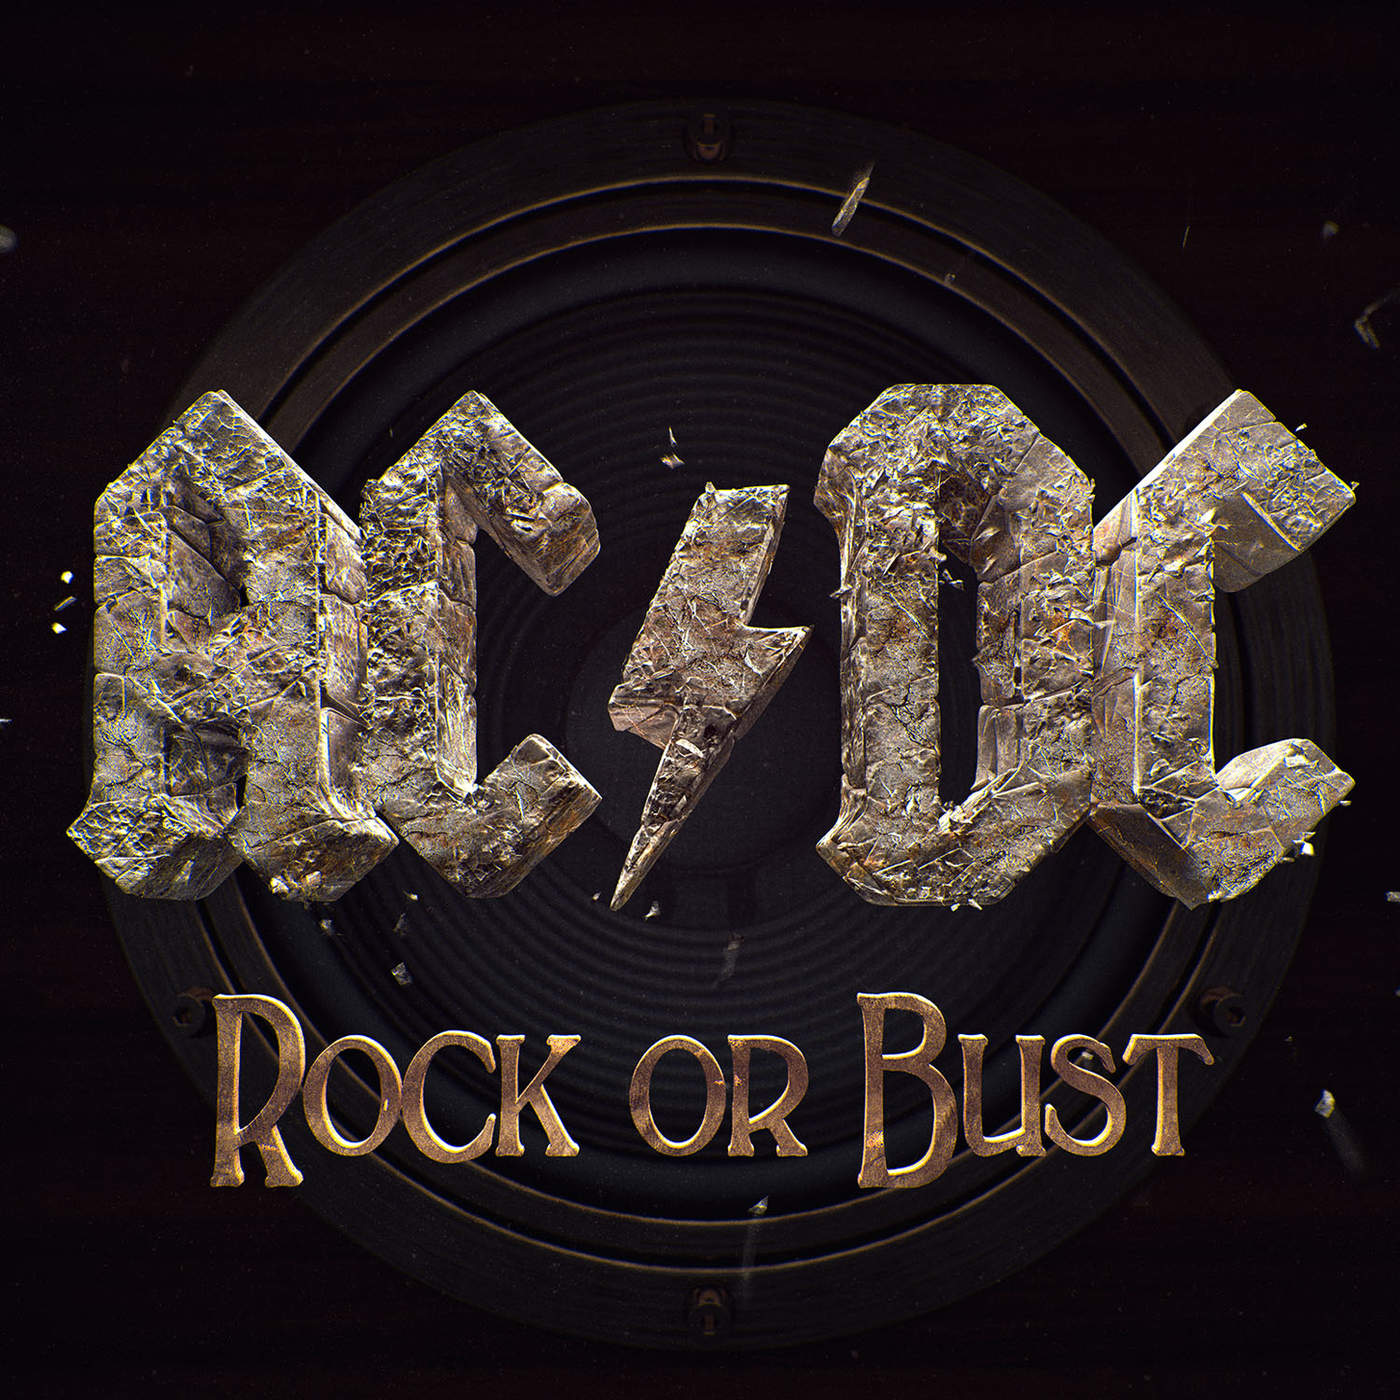 Play Ball by AC/DC